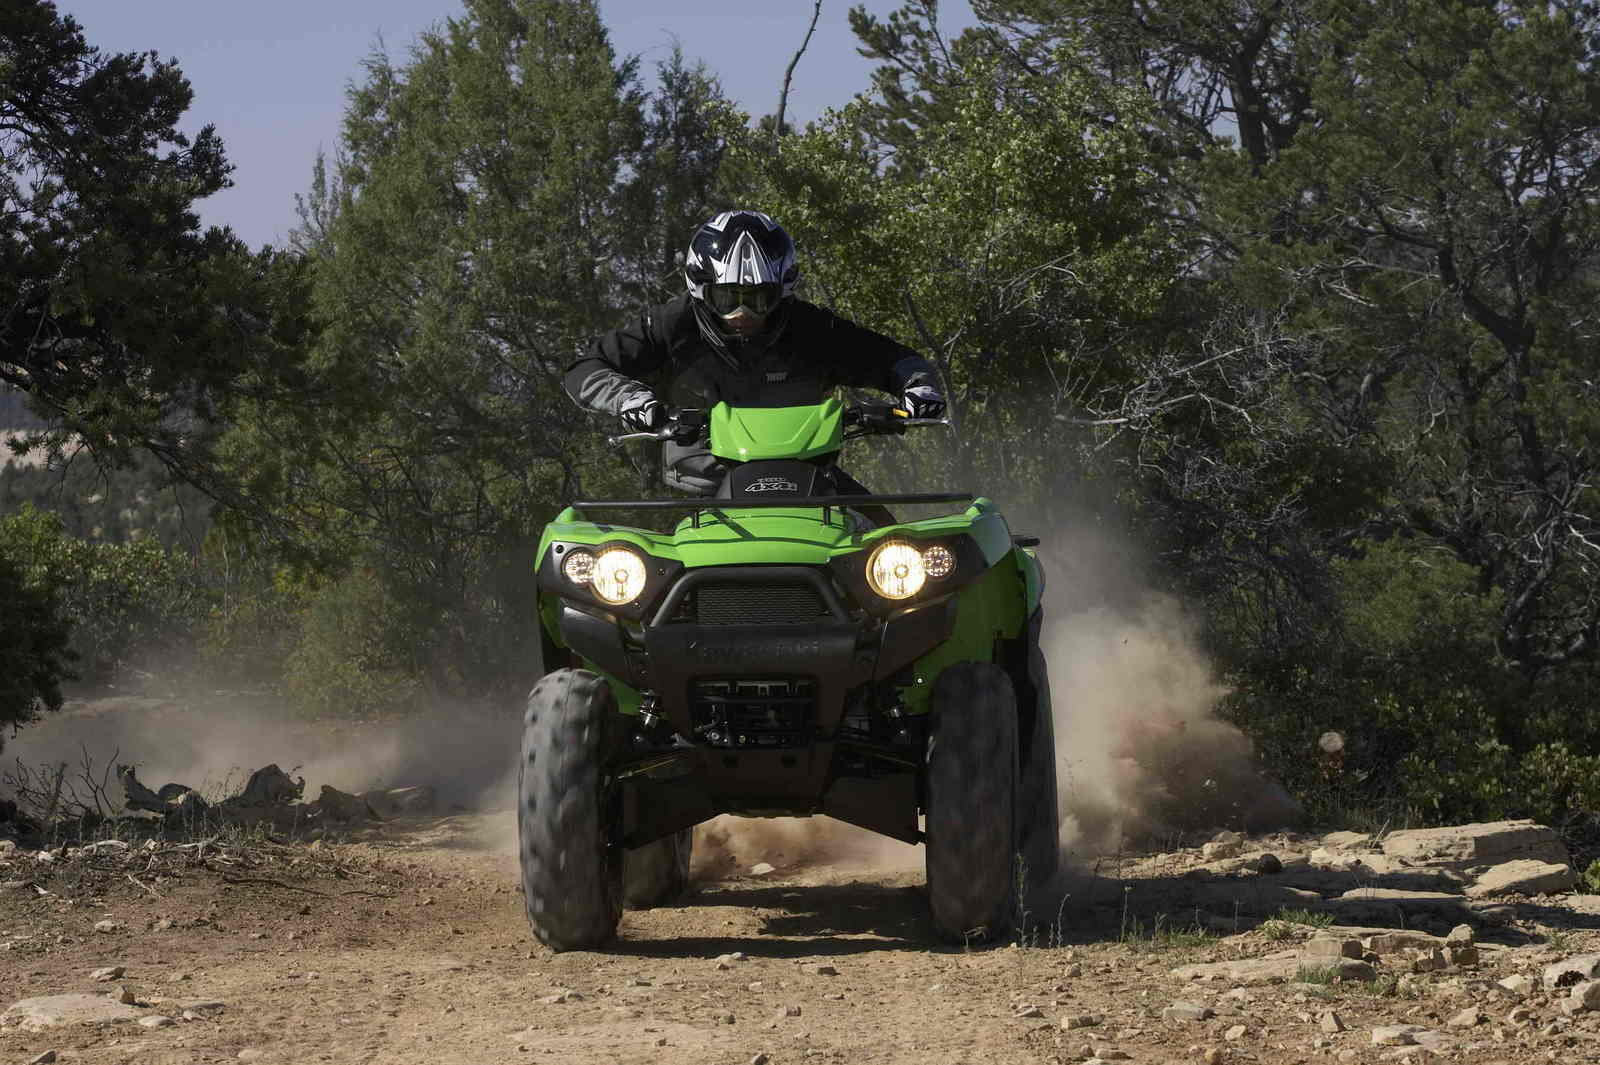 2007 kawasaki brute force 750 4x4i picture 158872 motorcycle review top speed. Black Bedroom Furniture Sets. Home Design Ideas